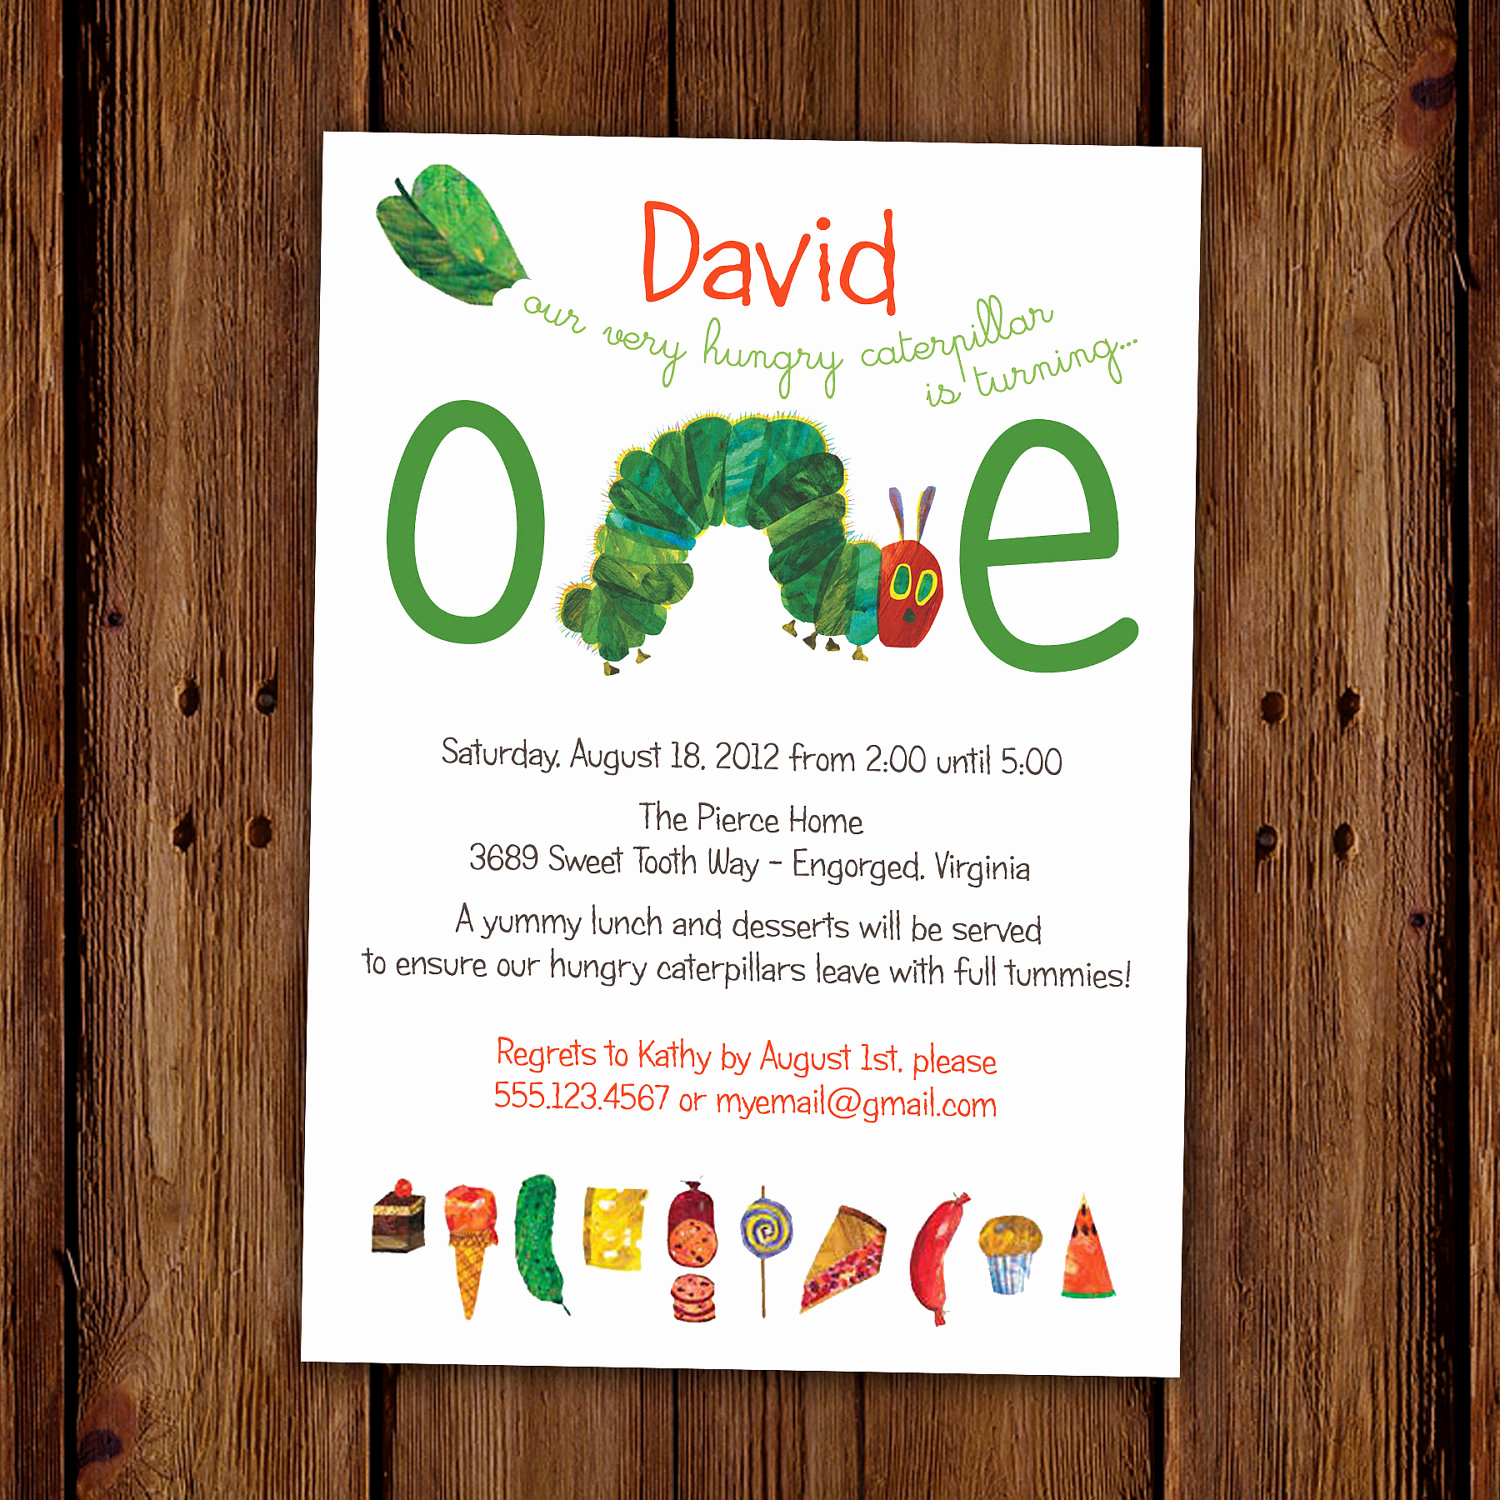 Very Hungry Caterpillar Invitation Template New Very Hungry Caterpillar Invitation Kids by Scriptivapaper